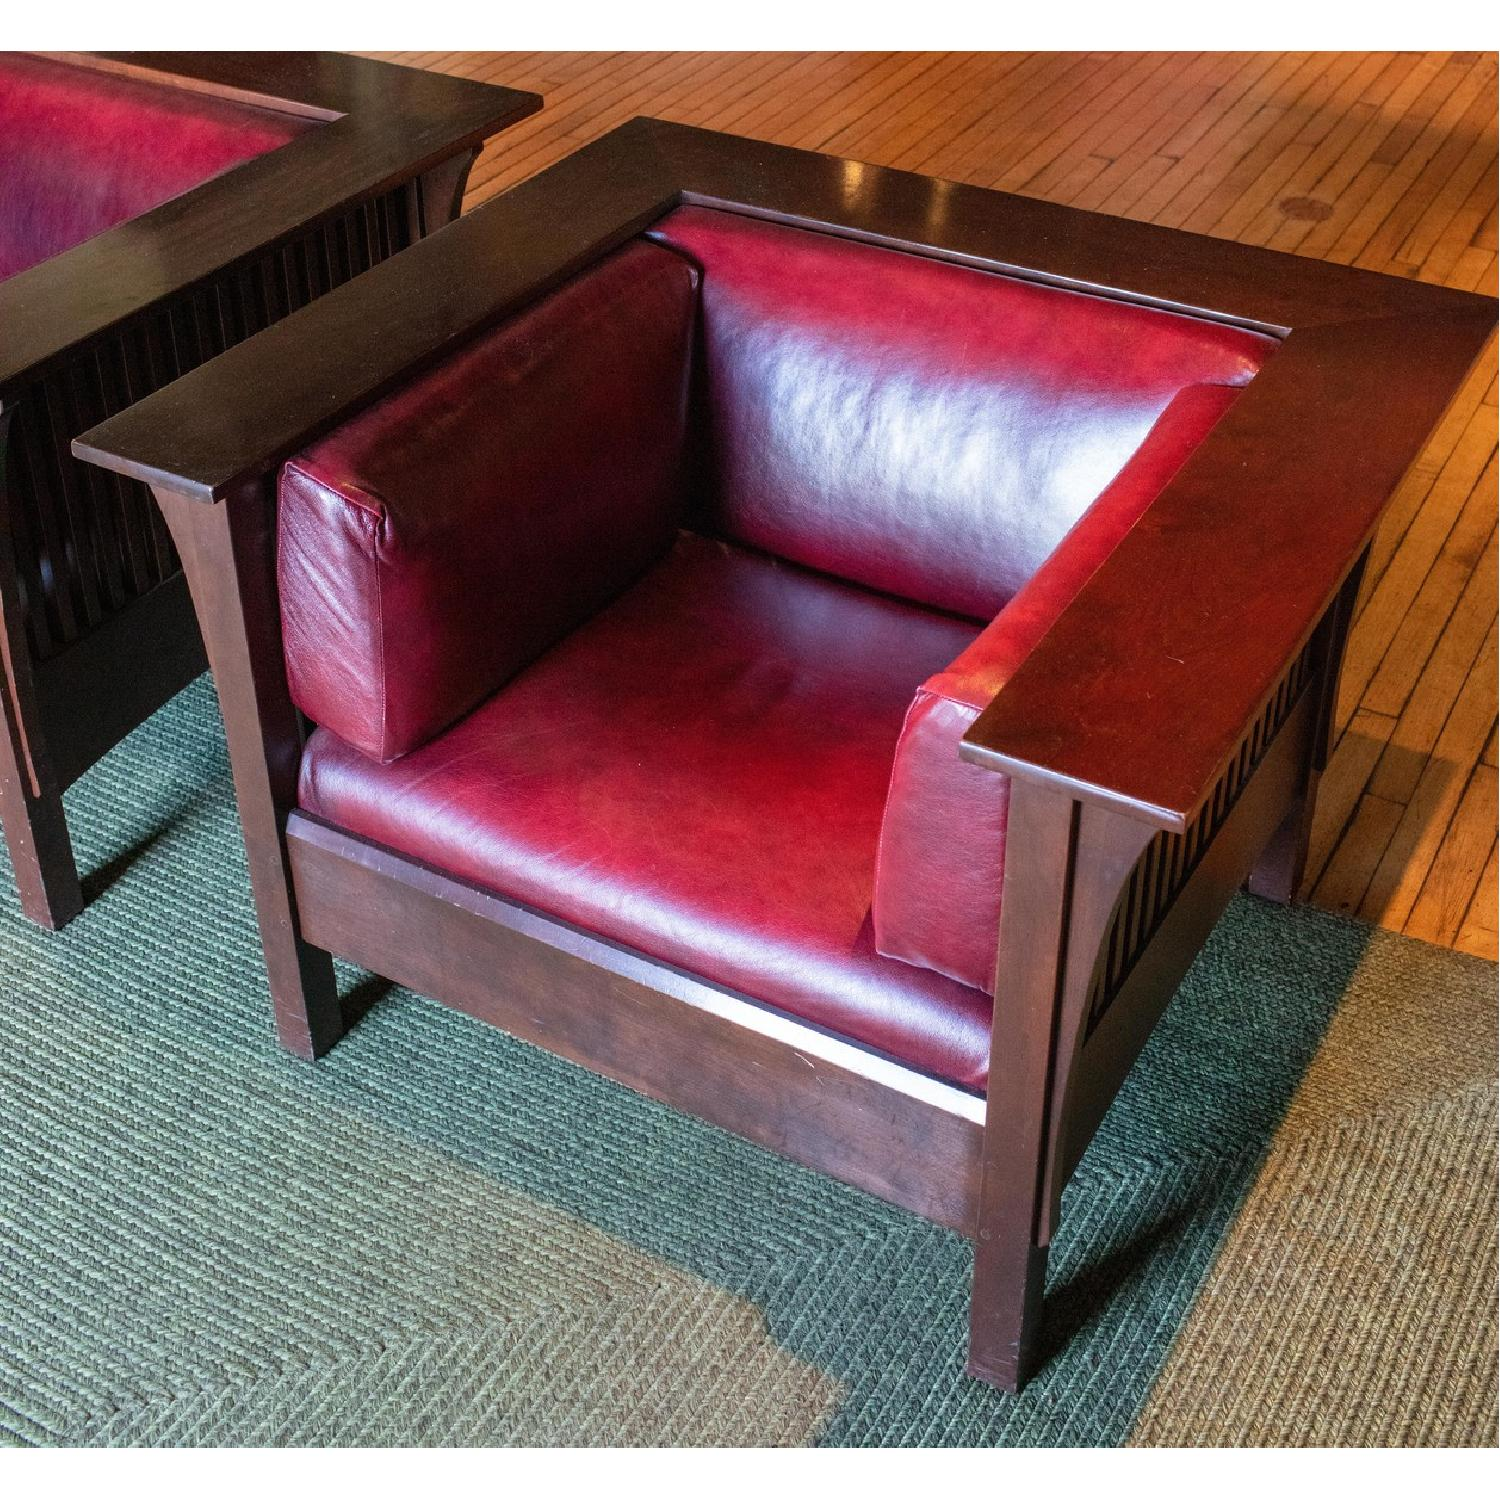 Stickley Prairie Spindle Chairs - image-6